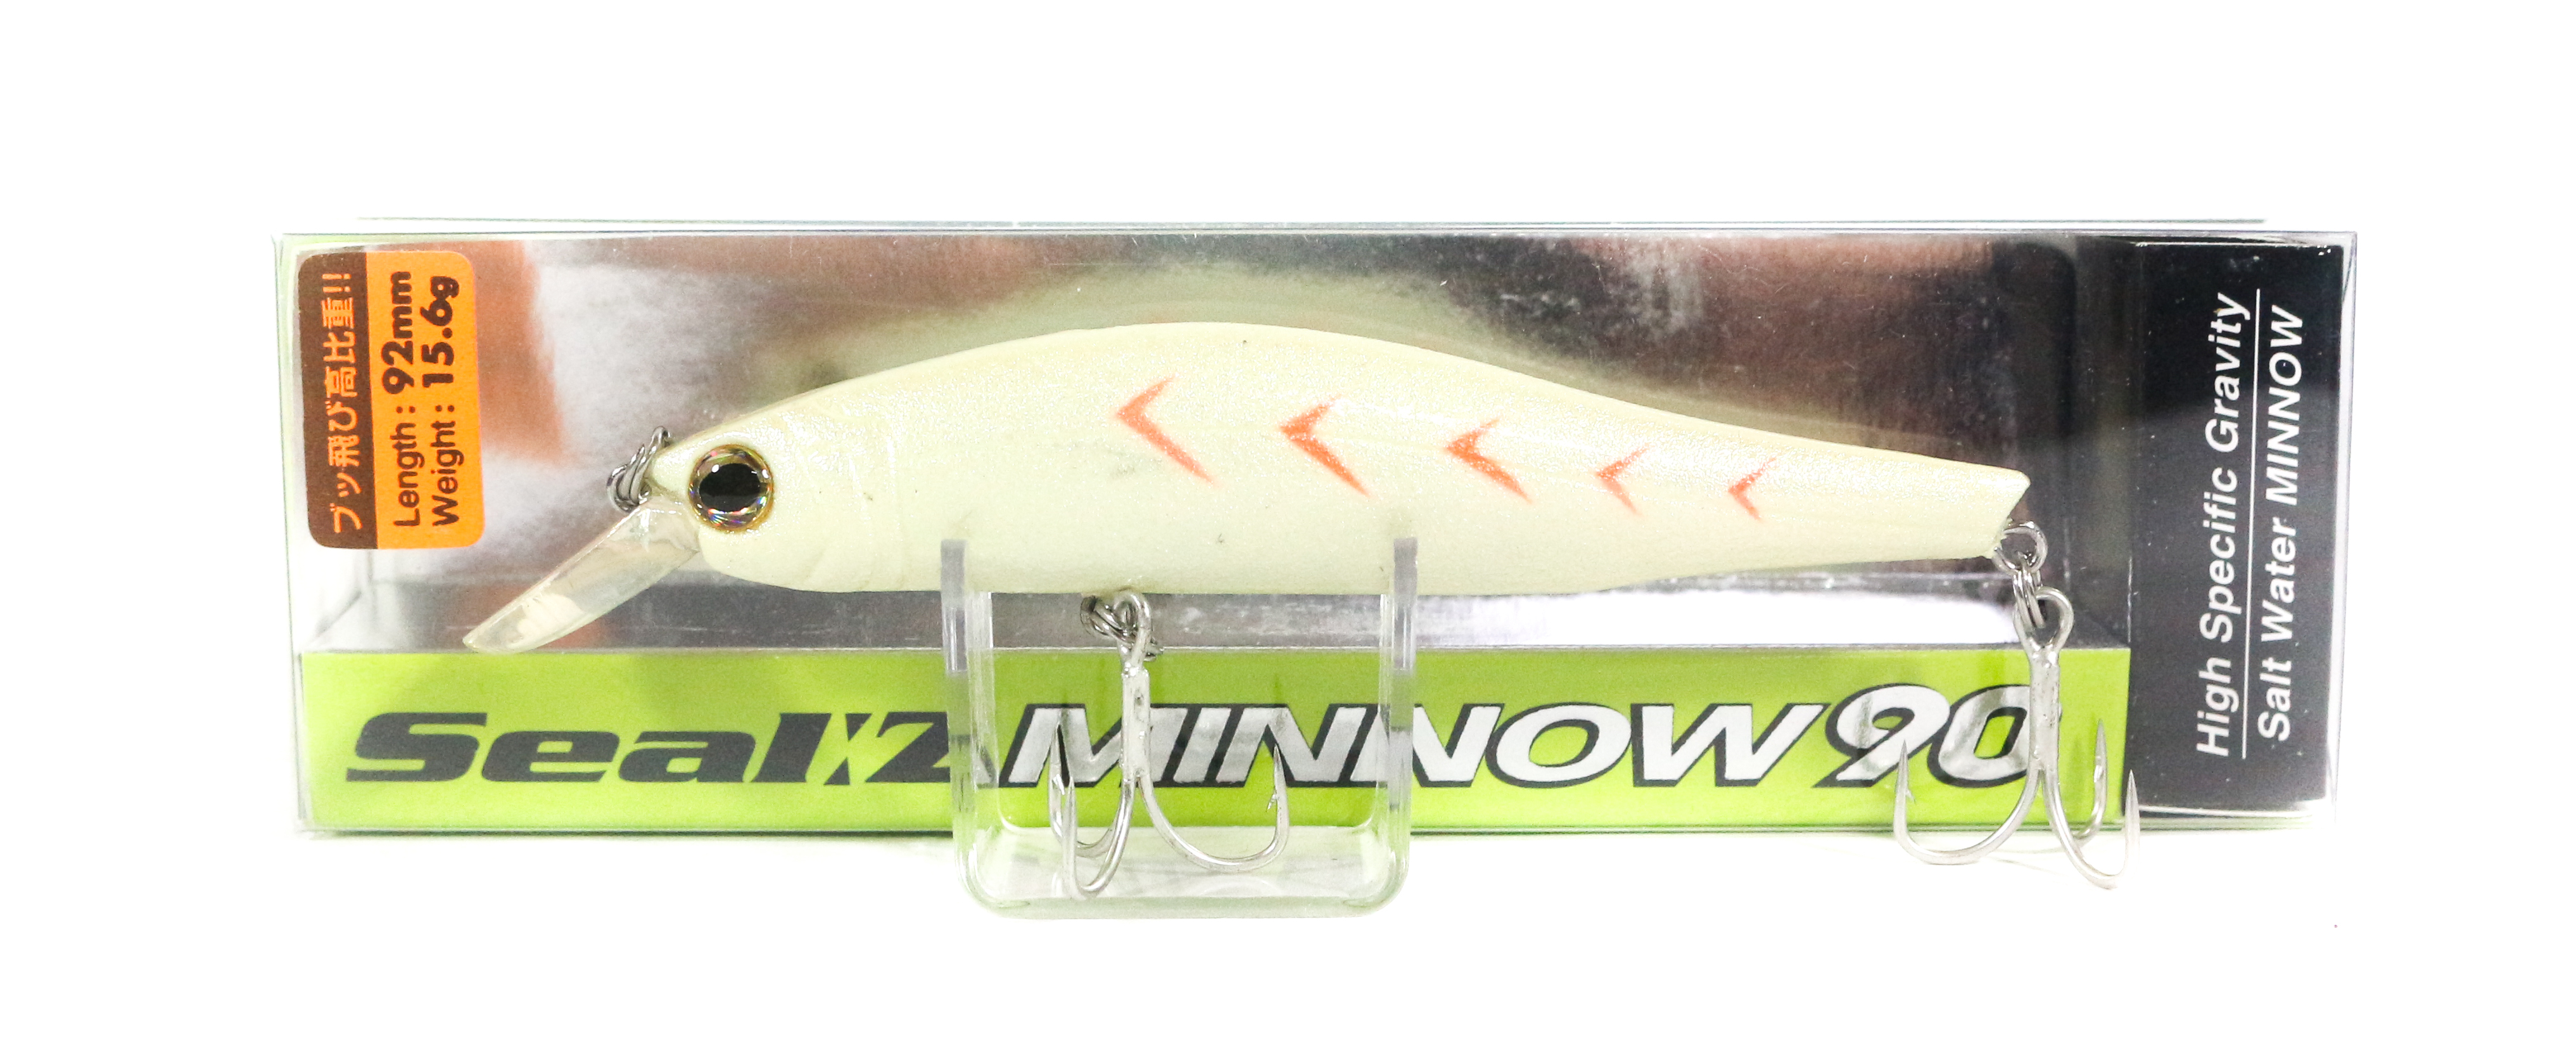 Sale Viva Aqua Wave Seal Z Minnow 90 Lure A27 (0220)